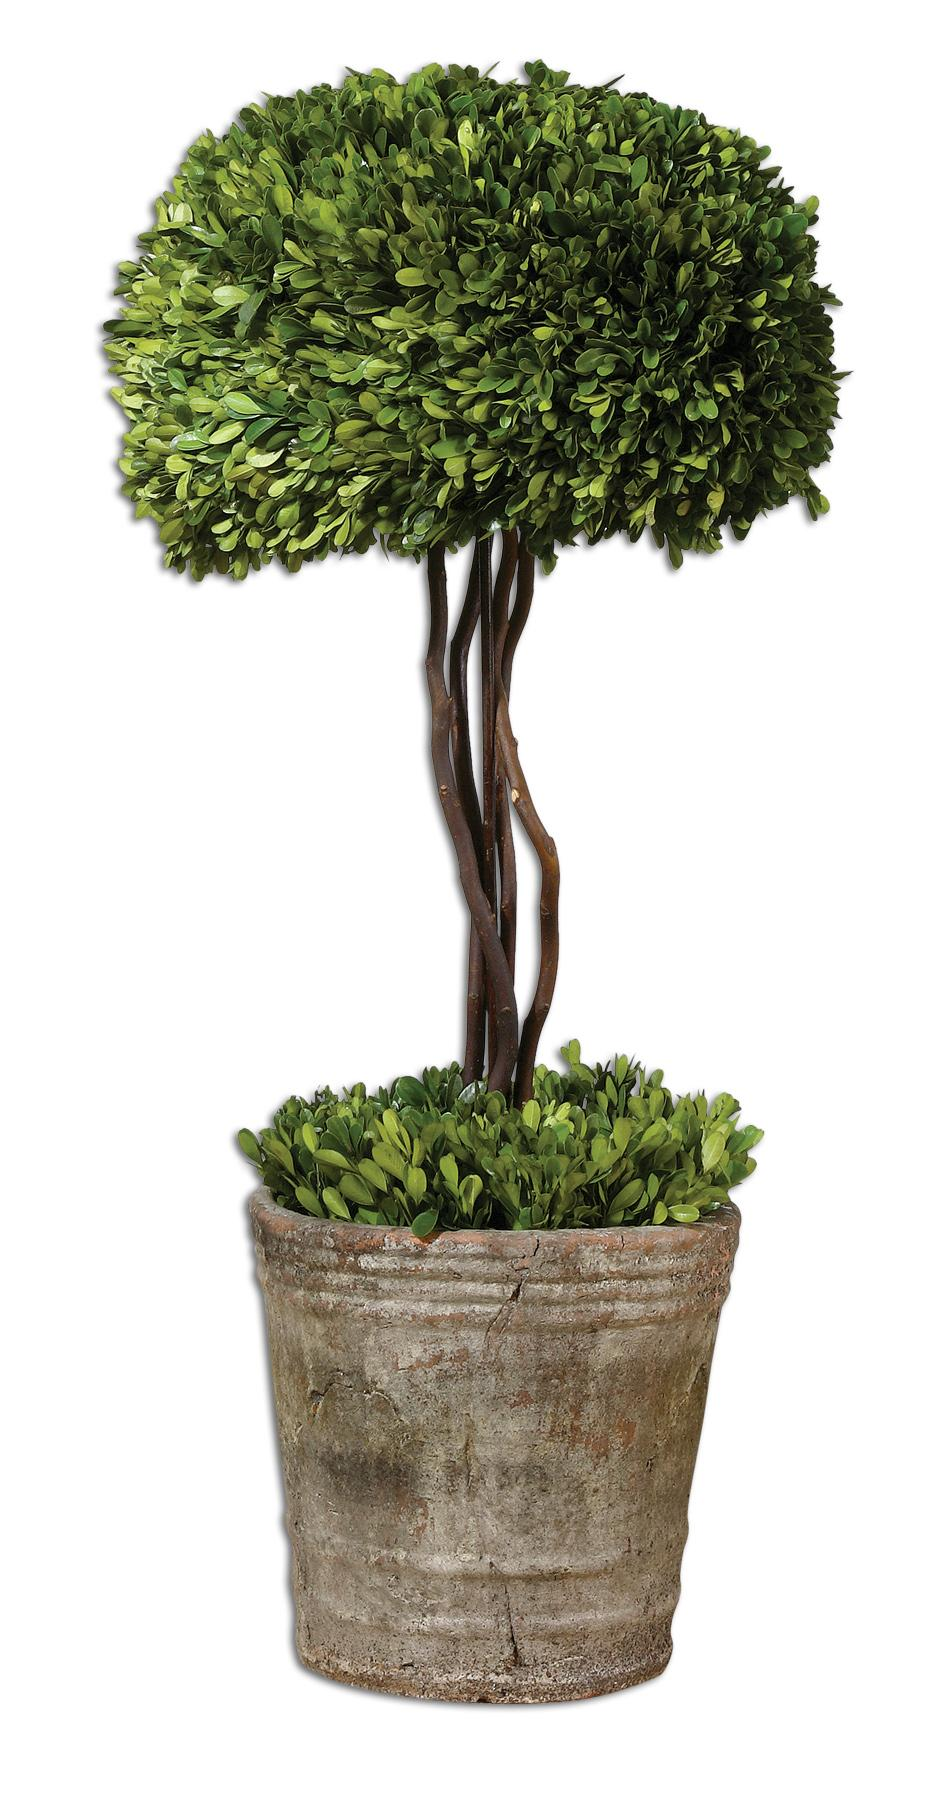 Uttermost Botanicals Preserved Boxwood Tree Topiary - Item Number: 60095